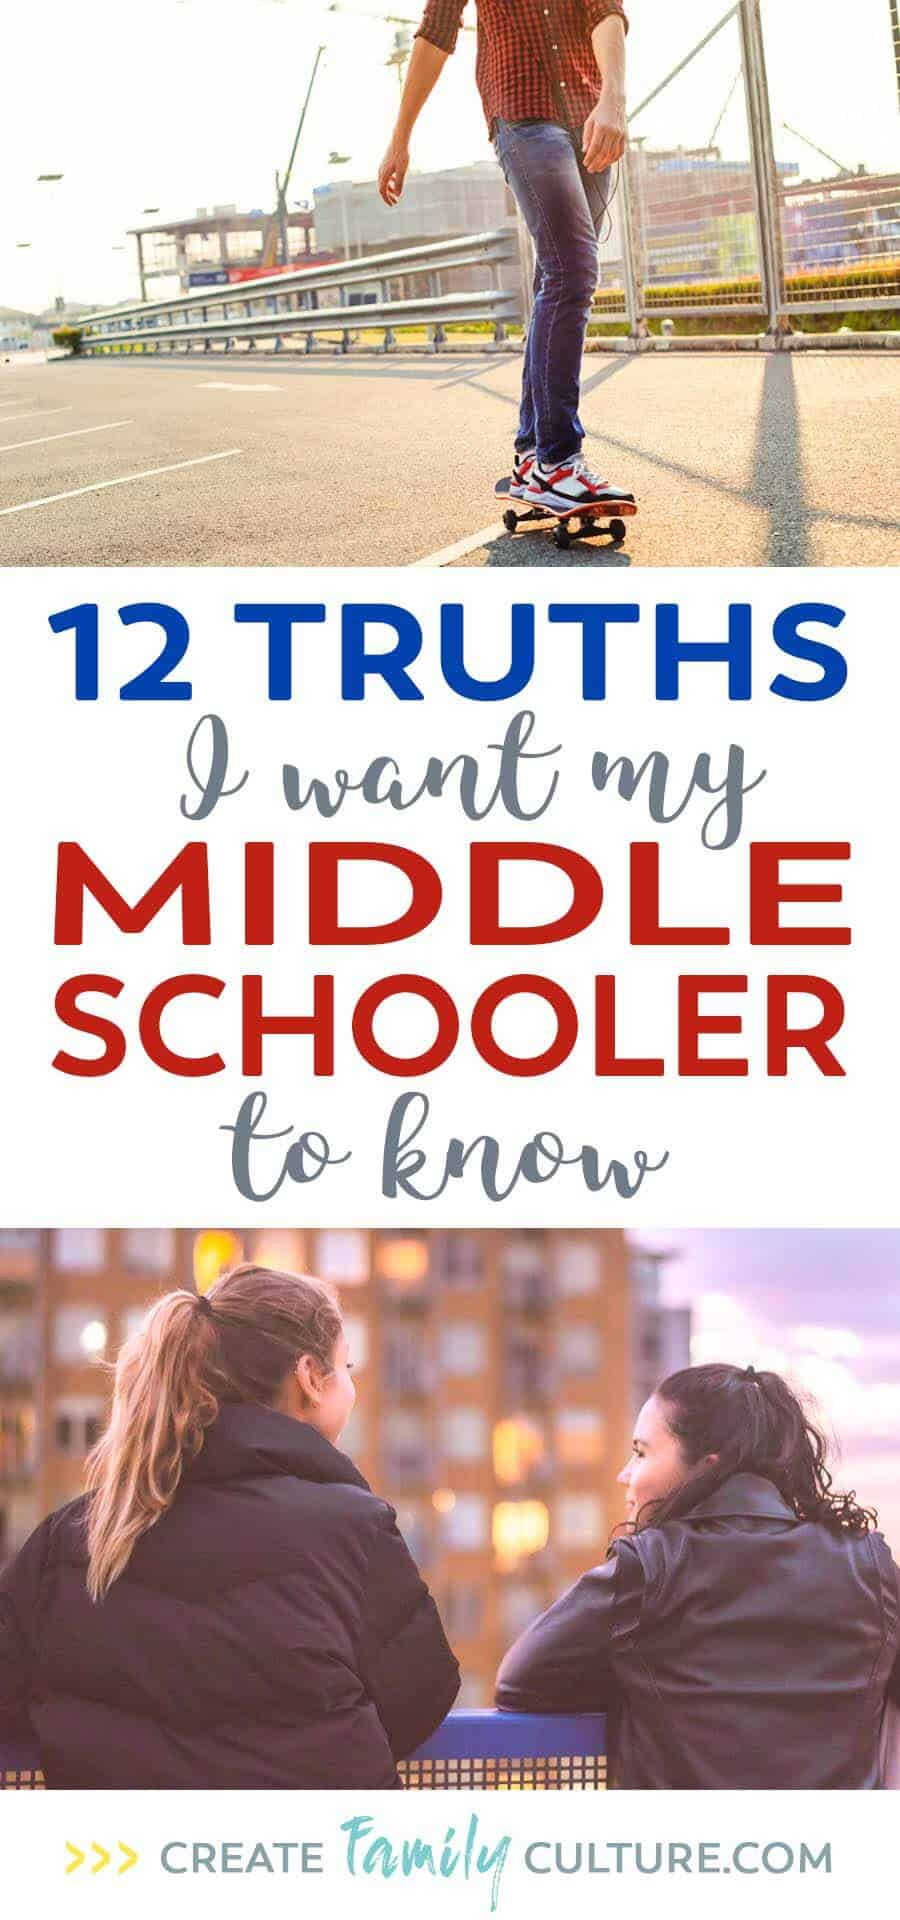 !2 Truths I Want My Middle Schooler to Know | Advice for Middle School | Parenting Tips and Tricks | Parenting Preteens | Christian Parenting Tips